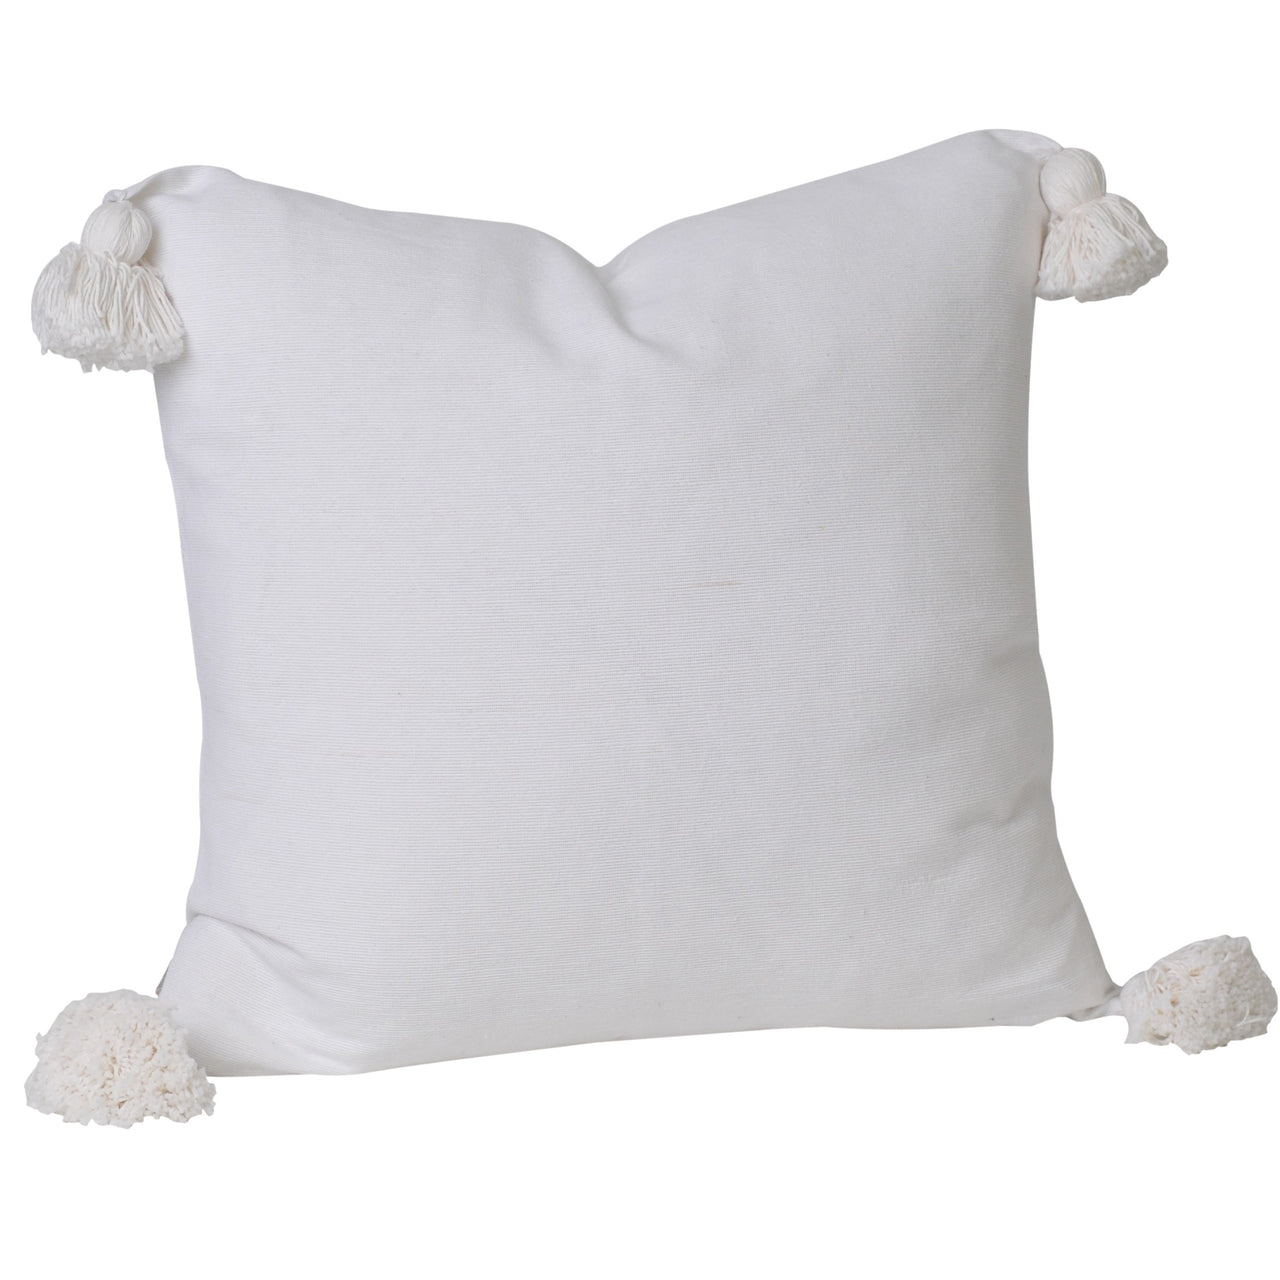 Soho Tassel Cushion- White